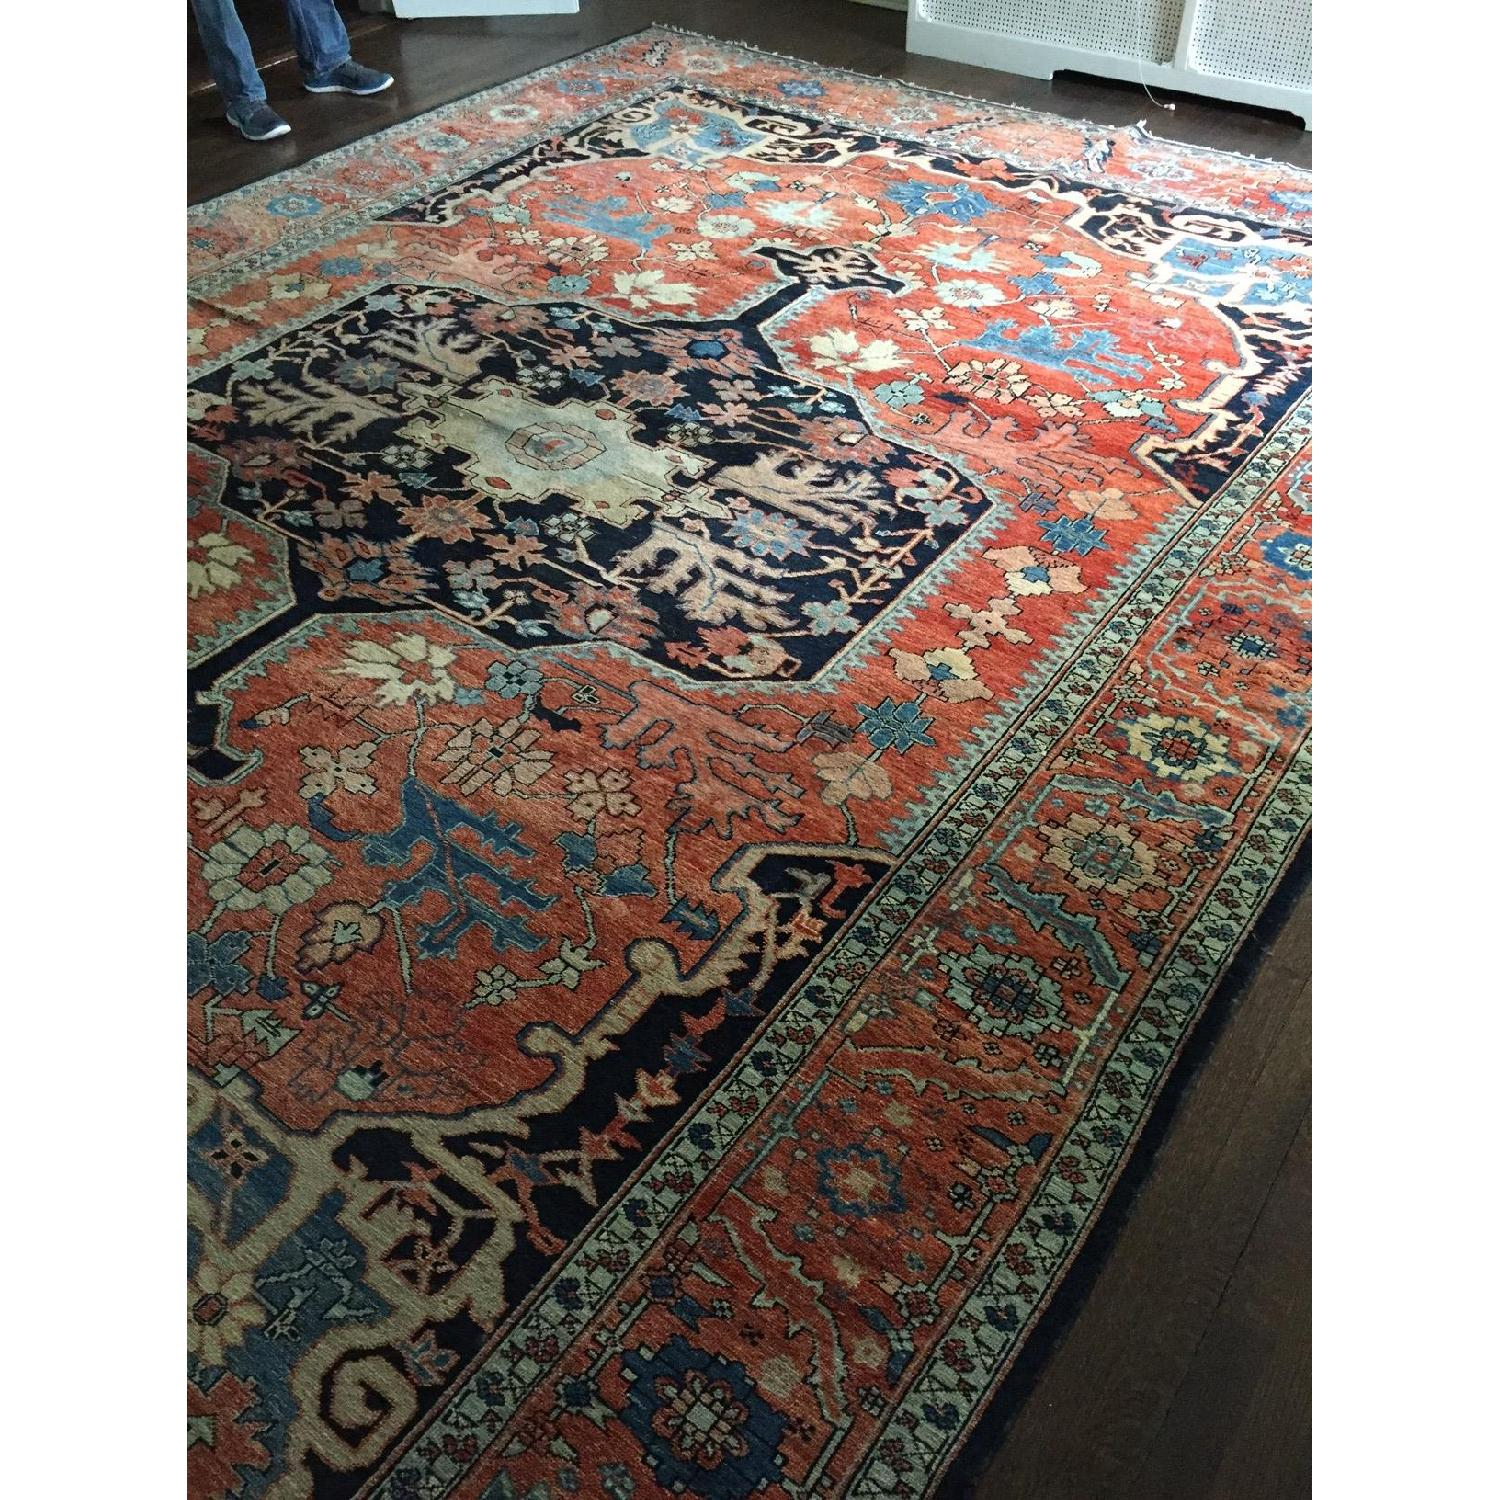 ABC Carpet & Home Woven Legends Turkish Rug - image-12